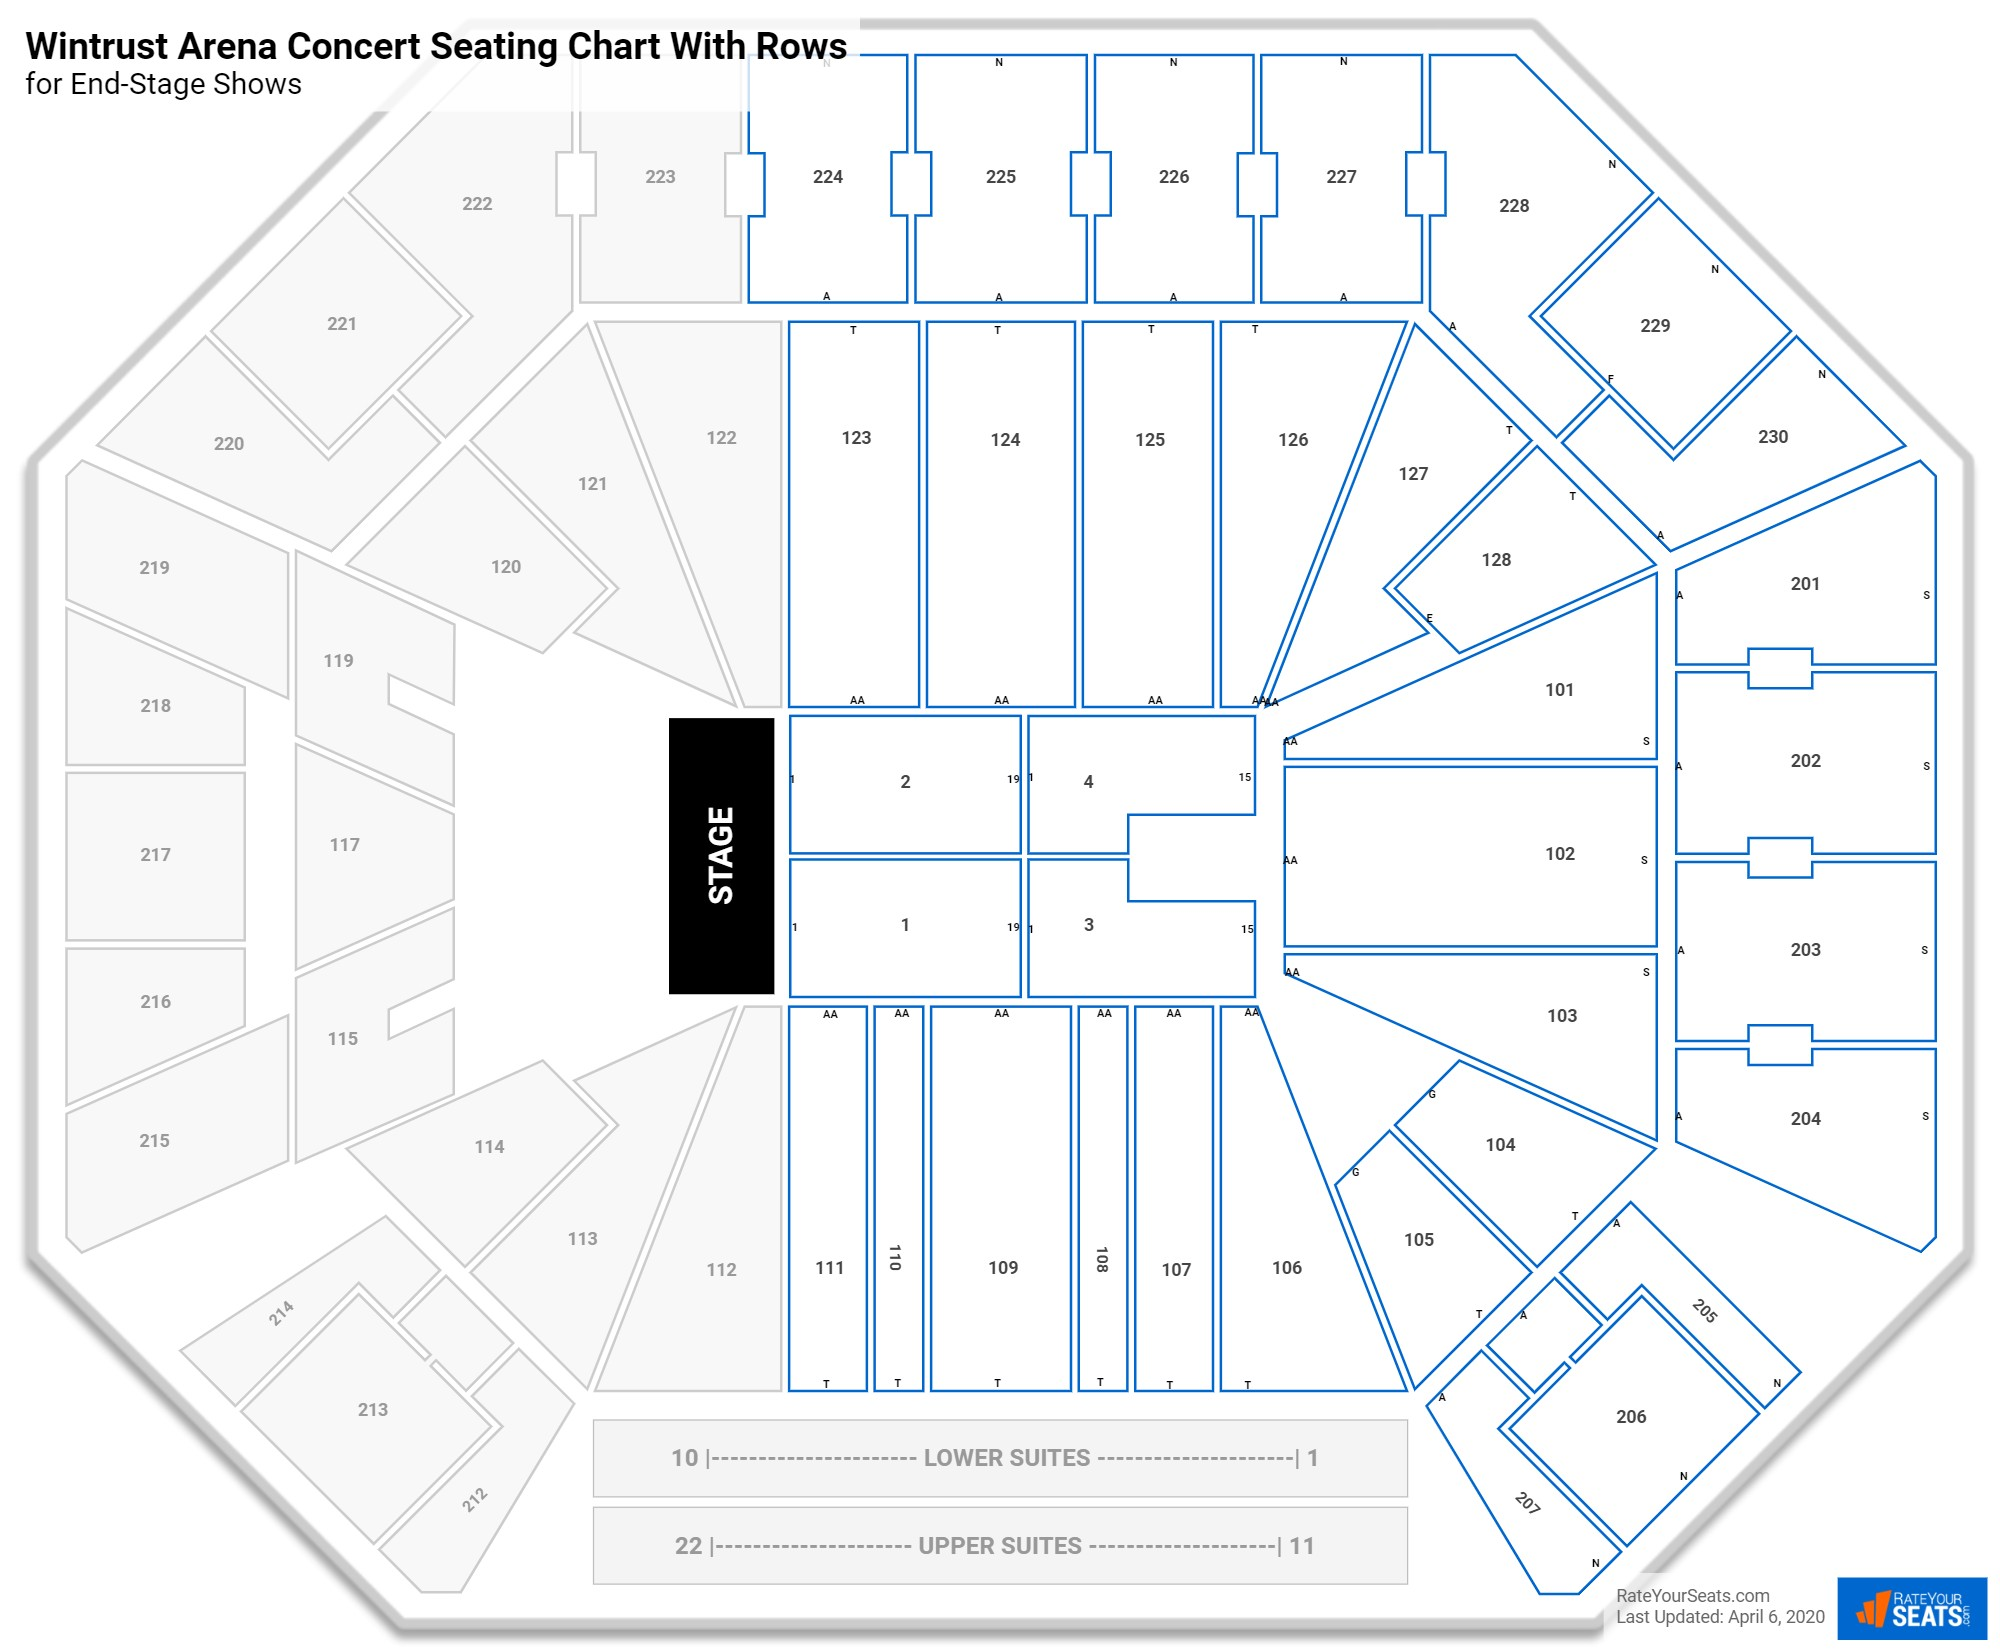 Wintrust Arena seating chart with rows concert